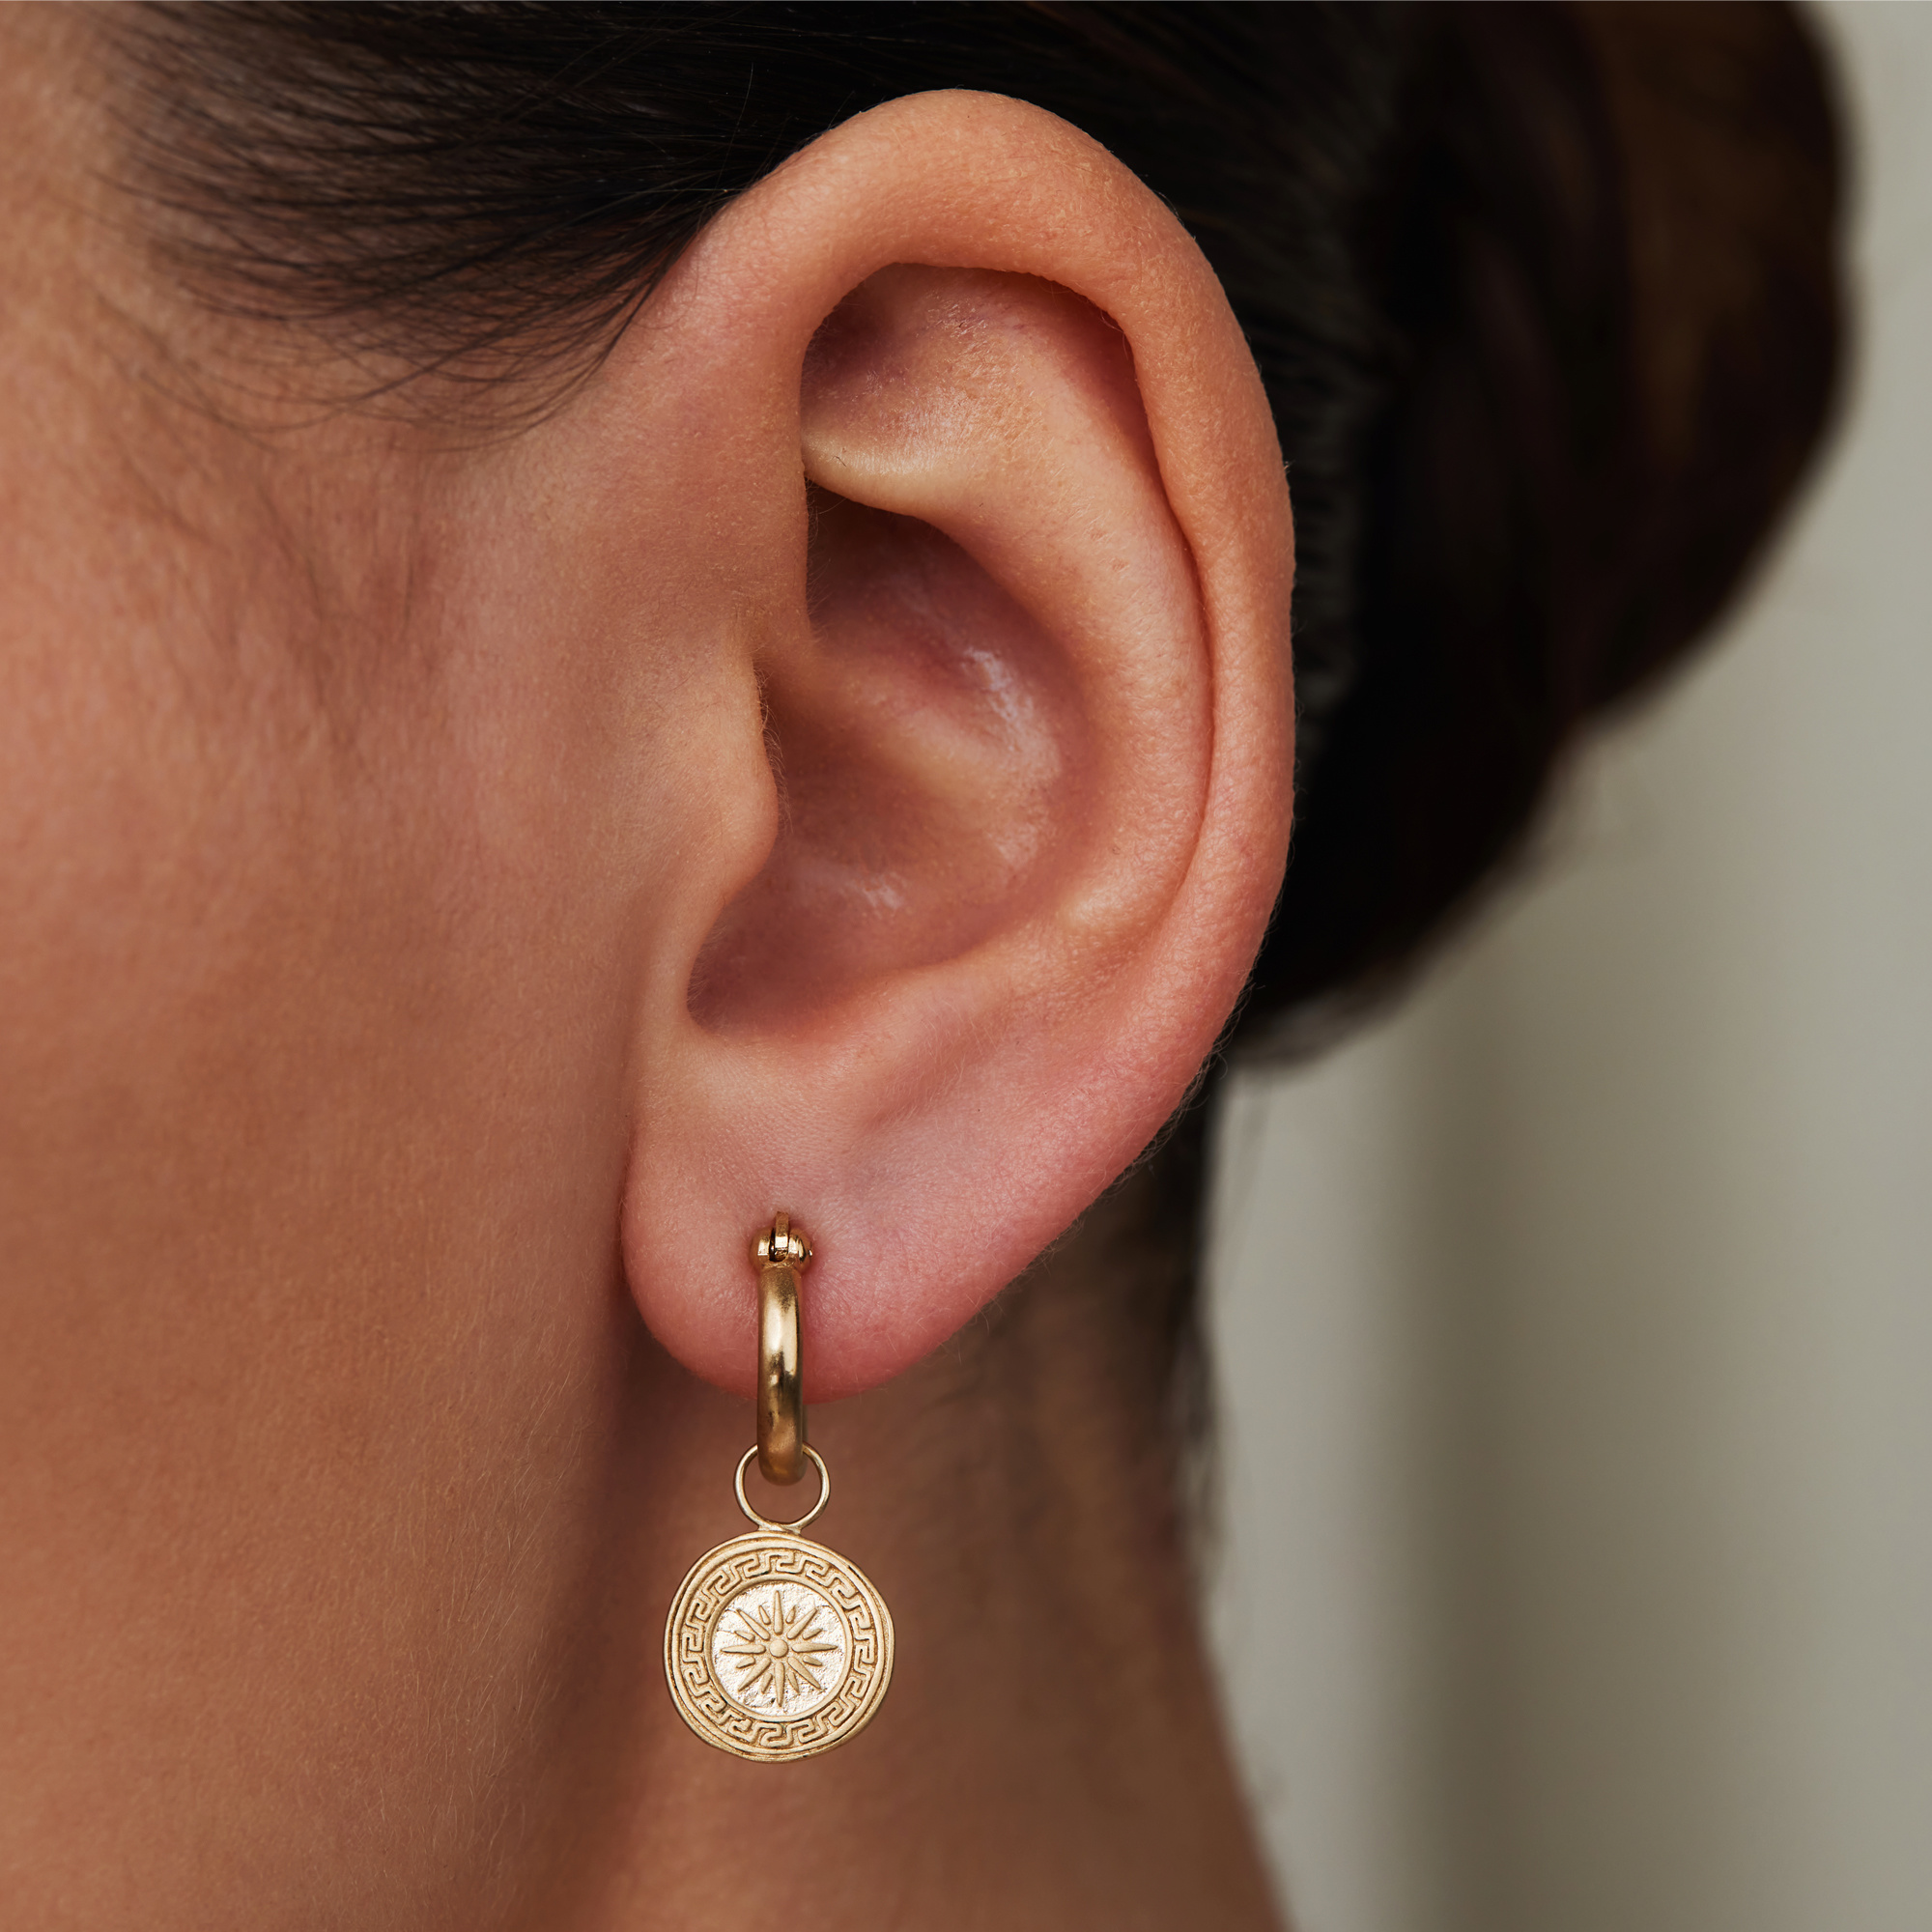 Violet Hamden Athens 925 sterling silver gold colored hoop earrings with coins